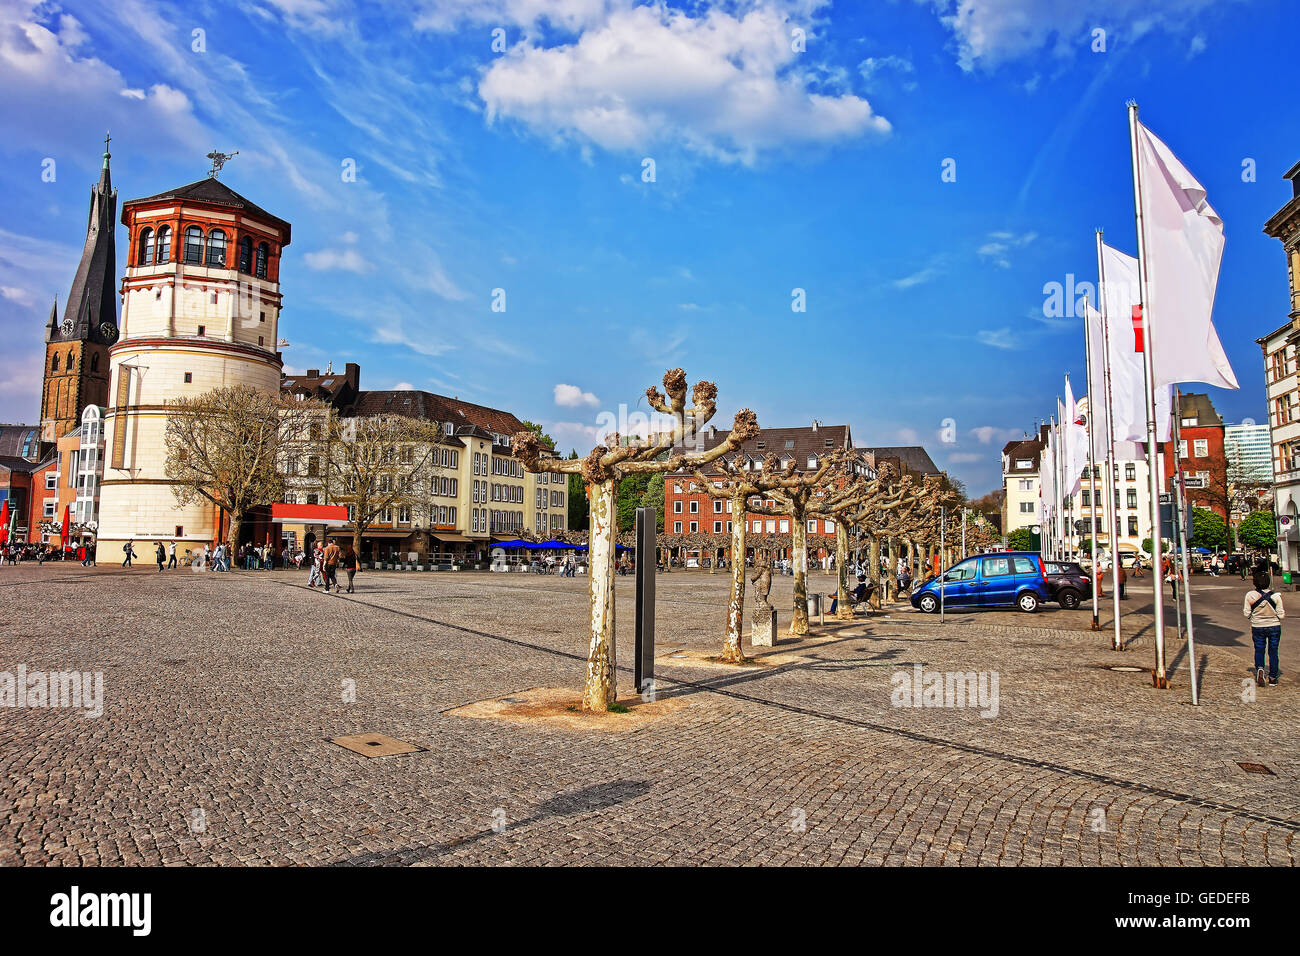 Dusseldorf, Germany - May 3, 2013: Housing and shipping museum and St Lambertus Basilica in the Old city center of Dusseldorf in Germany. Tourists nearby Stock Photo